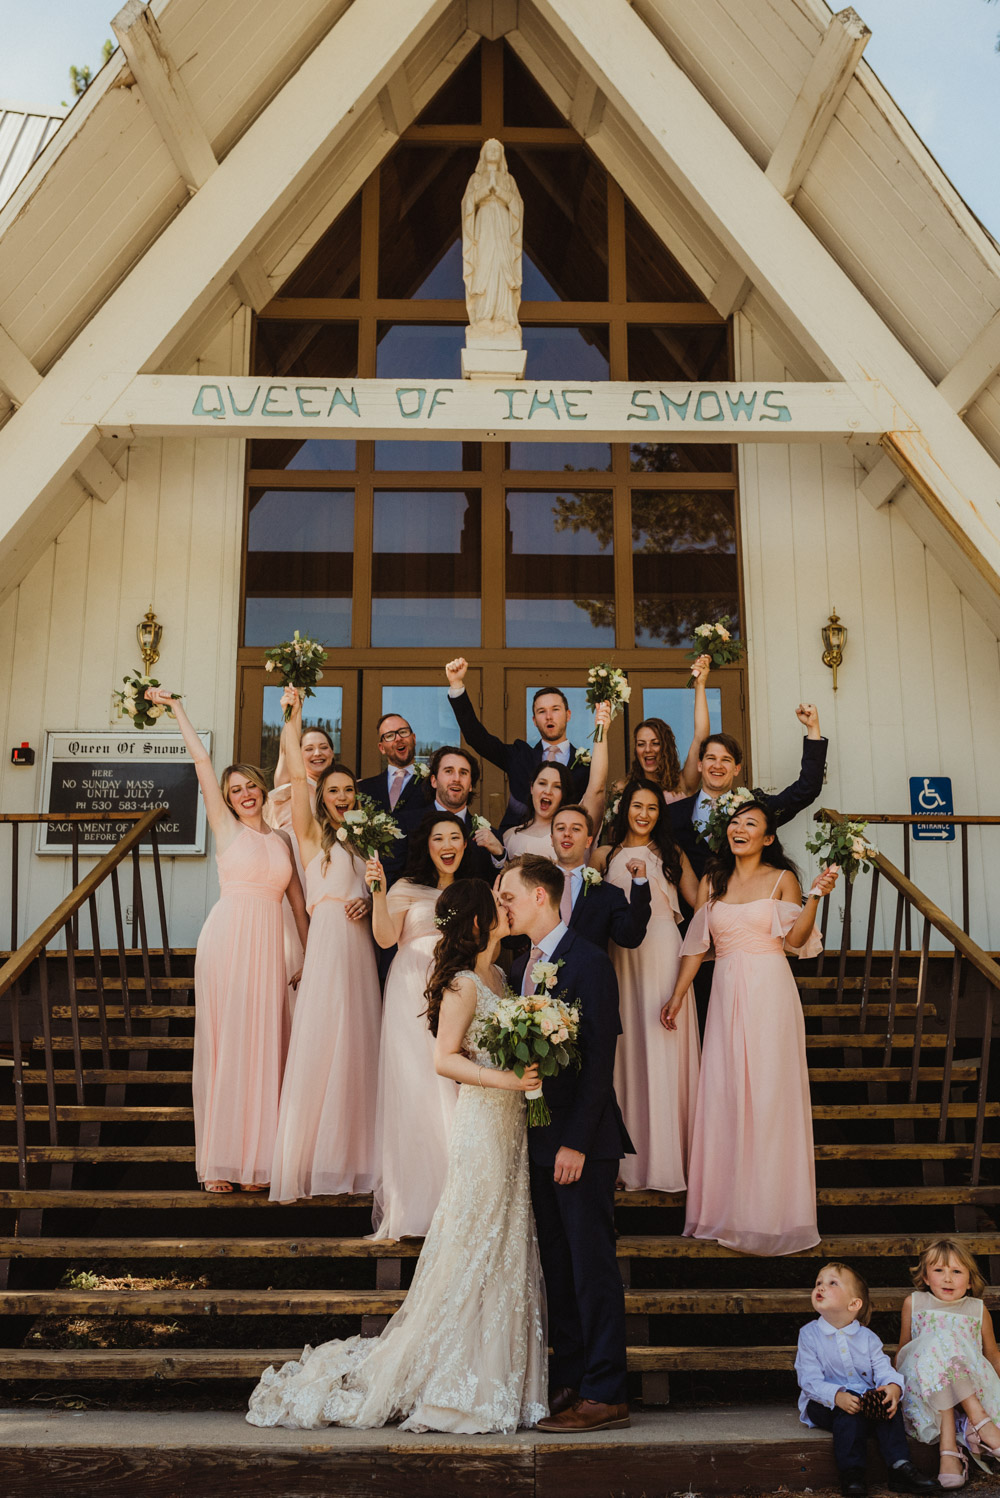 Hellman-Erman Mansion Wedding, photo of bridal party in front of the church (Quen of the Snows)